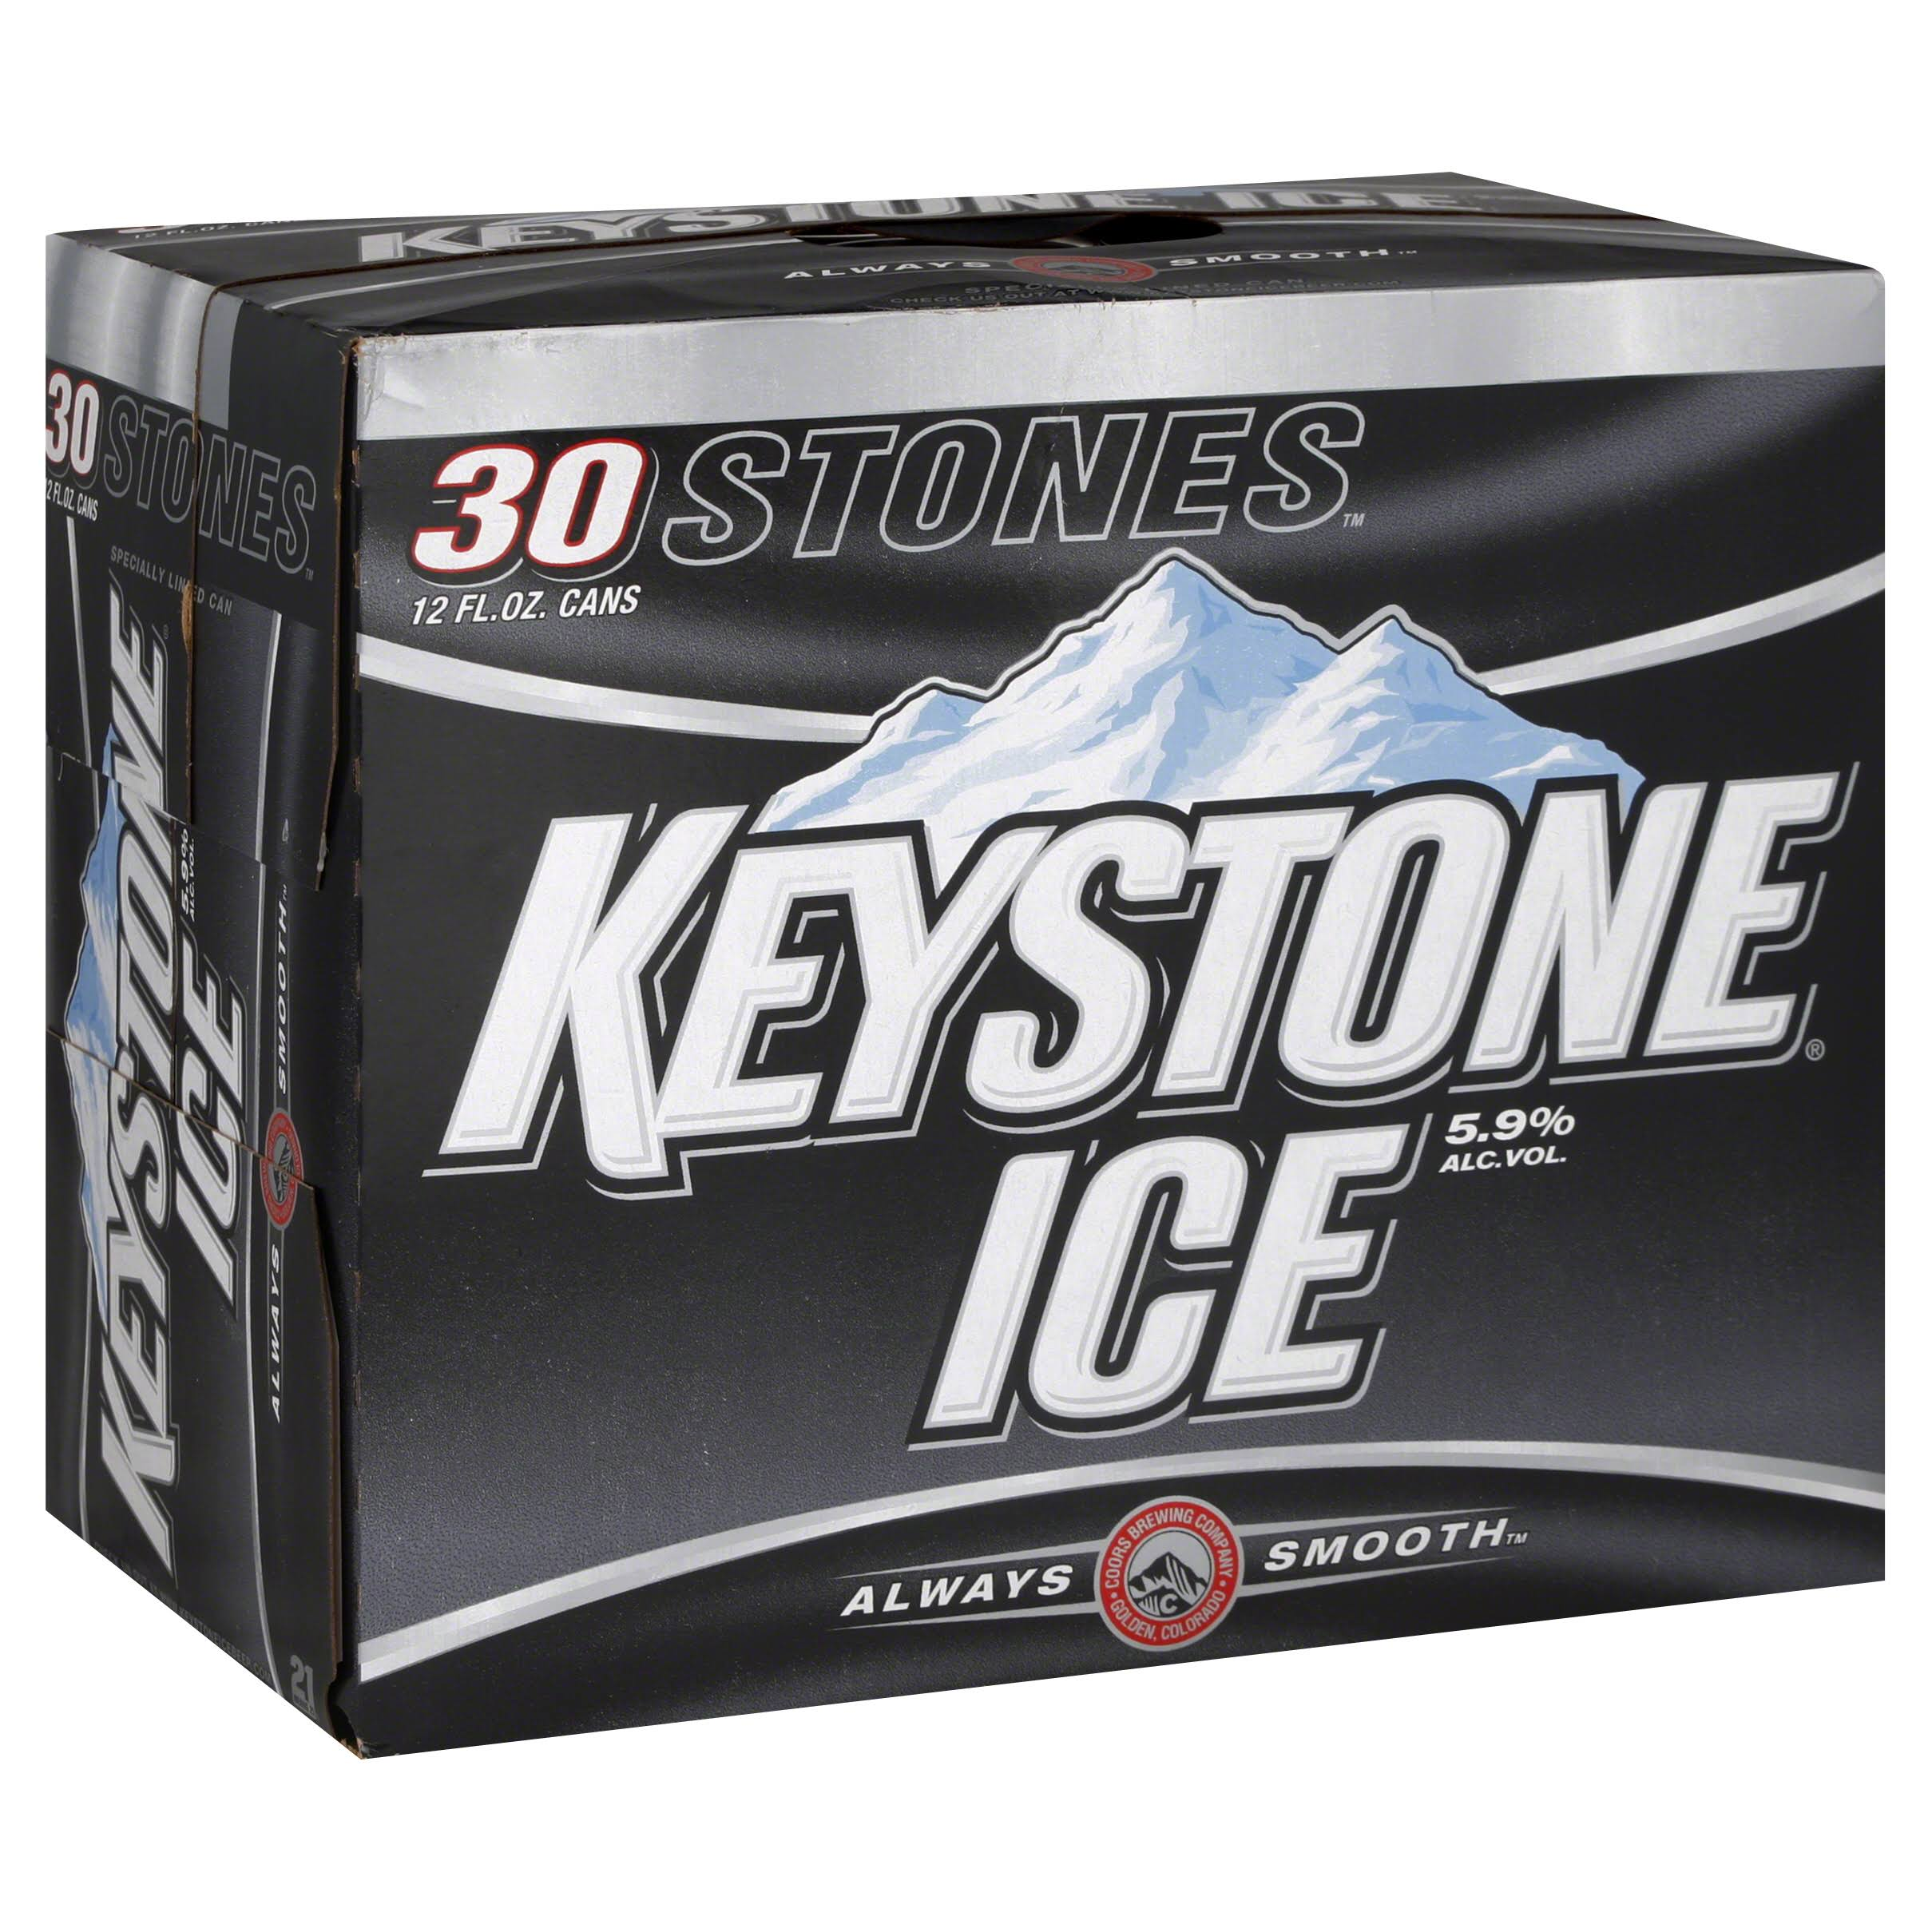 Keystone Ice Beer, 12 fl oz, 30 pack